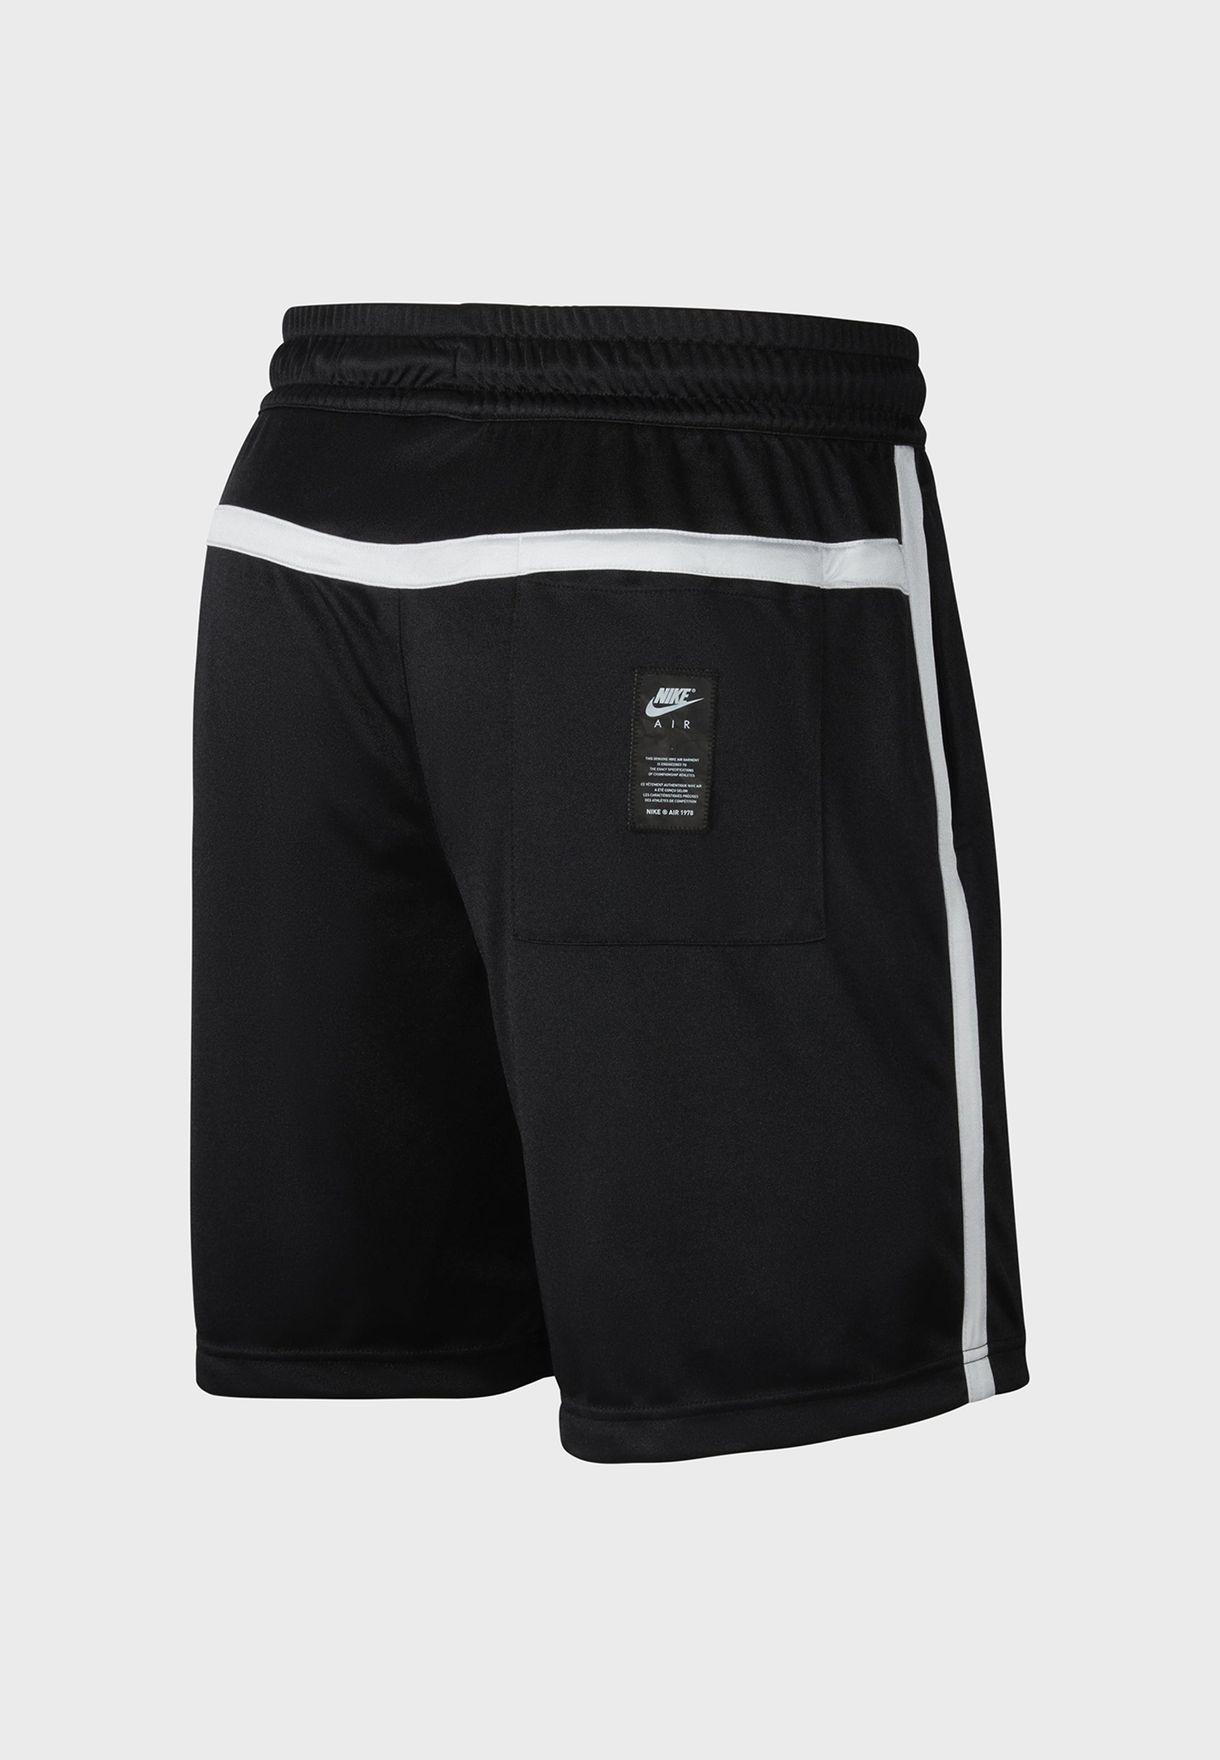 NSW Air Shorts